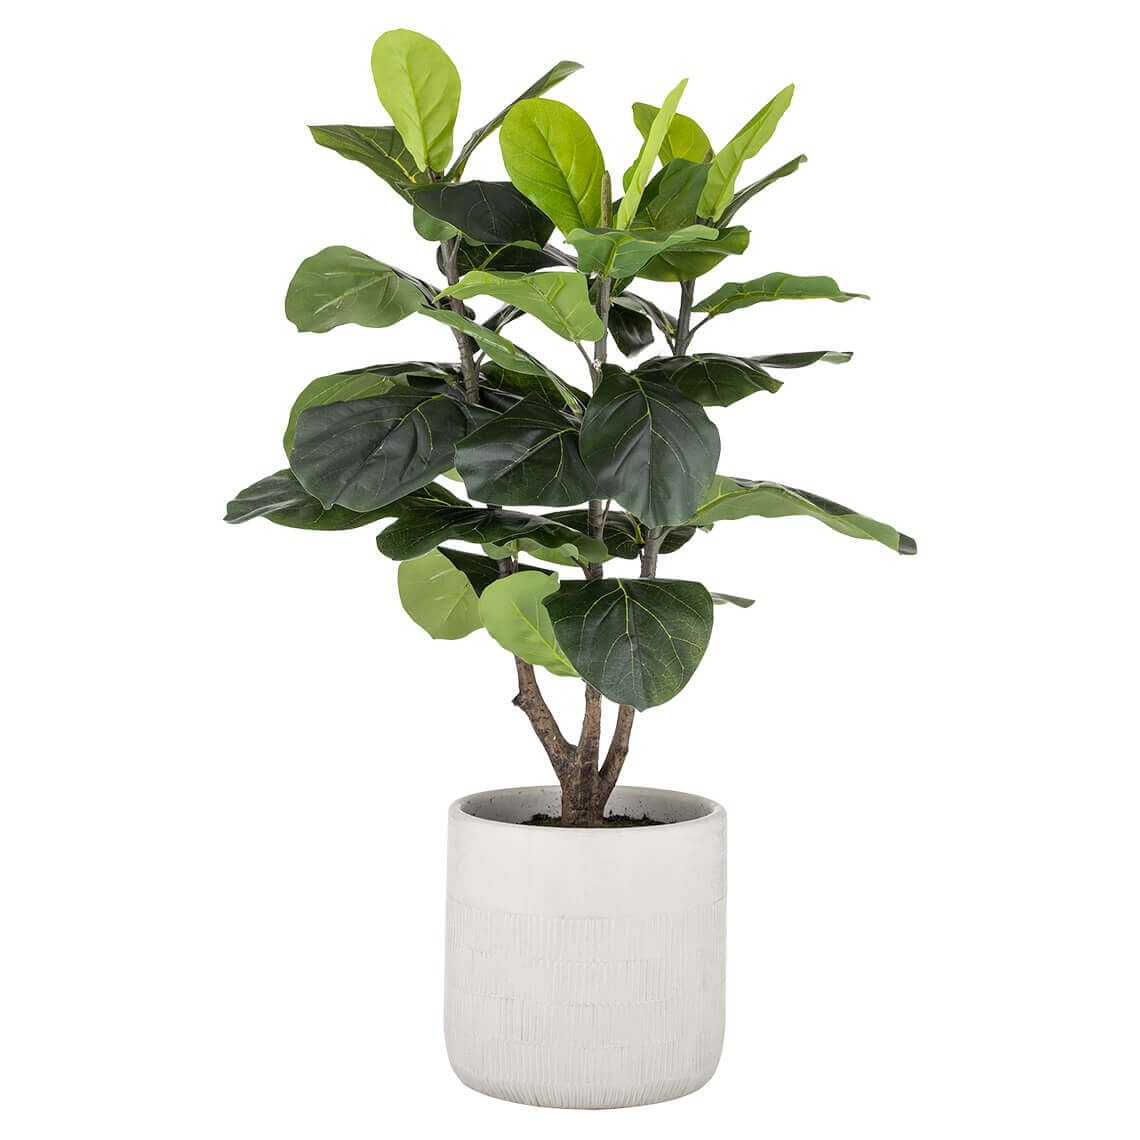 Giant Fiddle Tree In Pot Size W 57cm x D 57cm x H 57cm in Beige Freedom by Freedom, a Plants for sale on Style Sourcebook